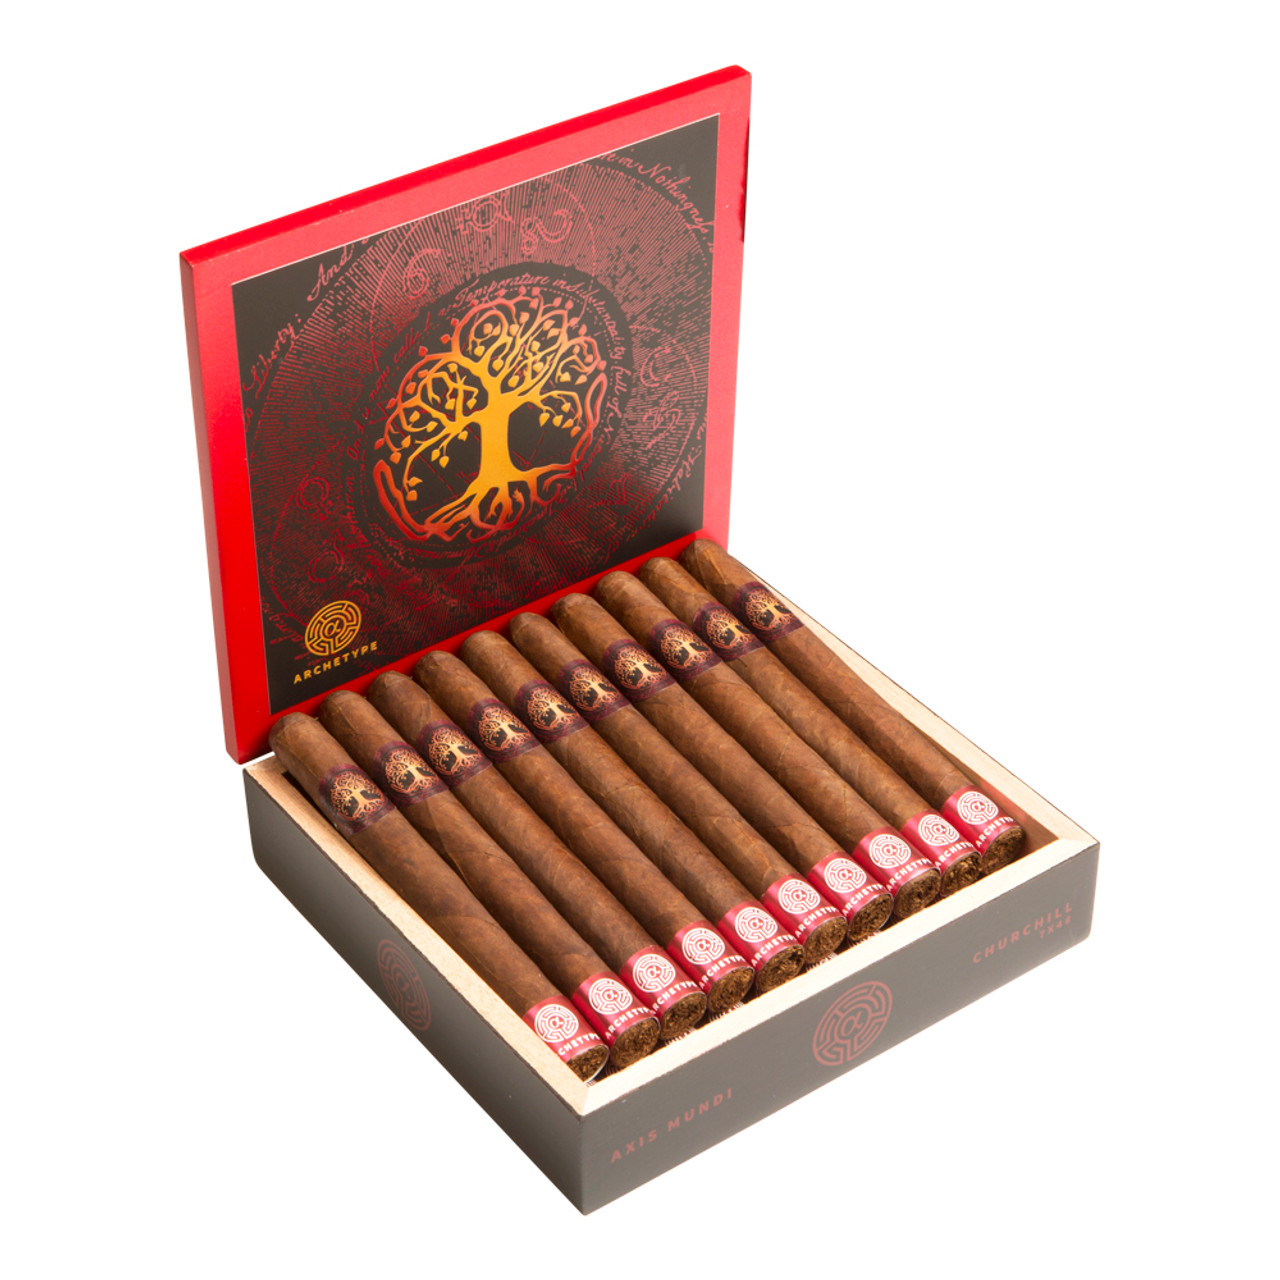 Archetype Axis Mundi Churchill Cigars - 7 x 48 (Box of 20)